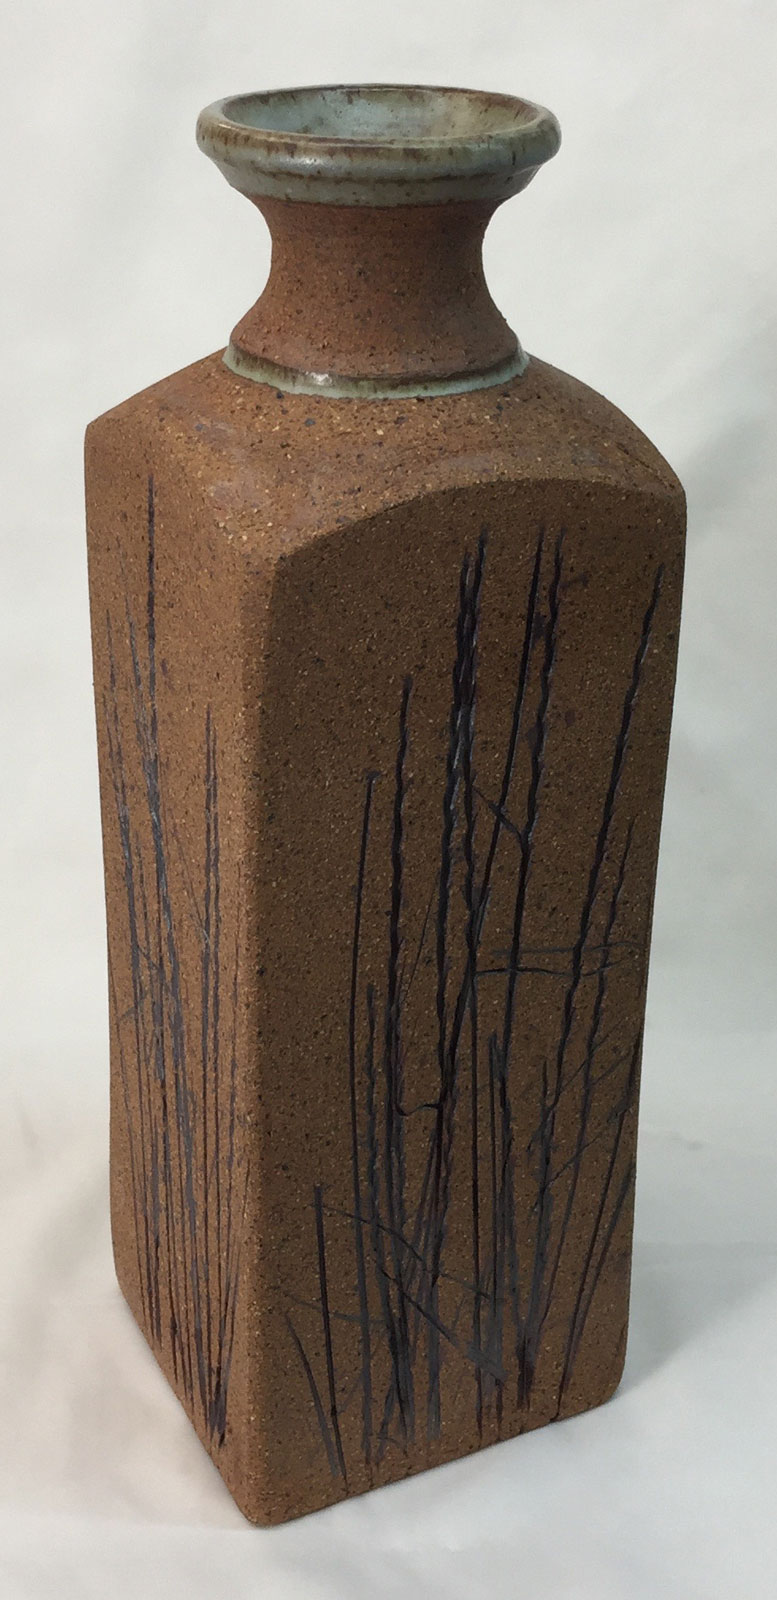 Handbuilt vase with thrown neck by Tony Hansen